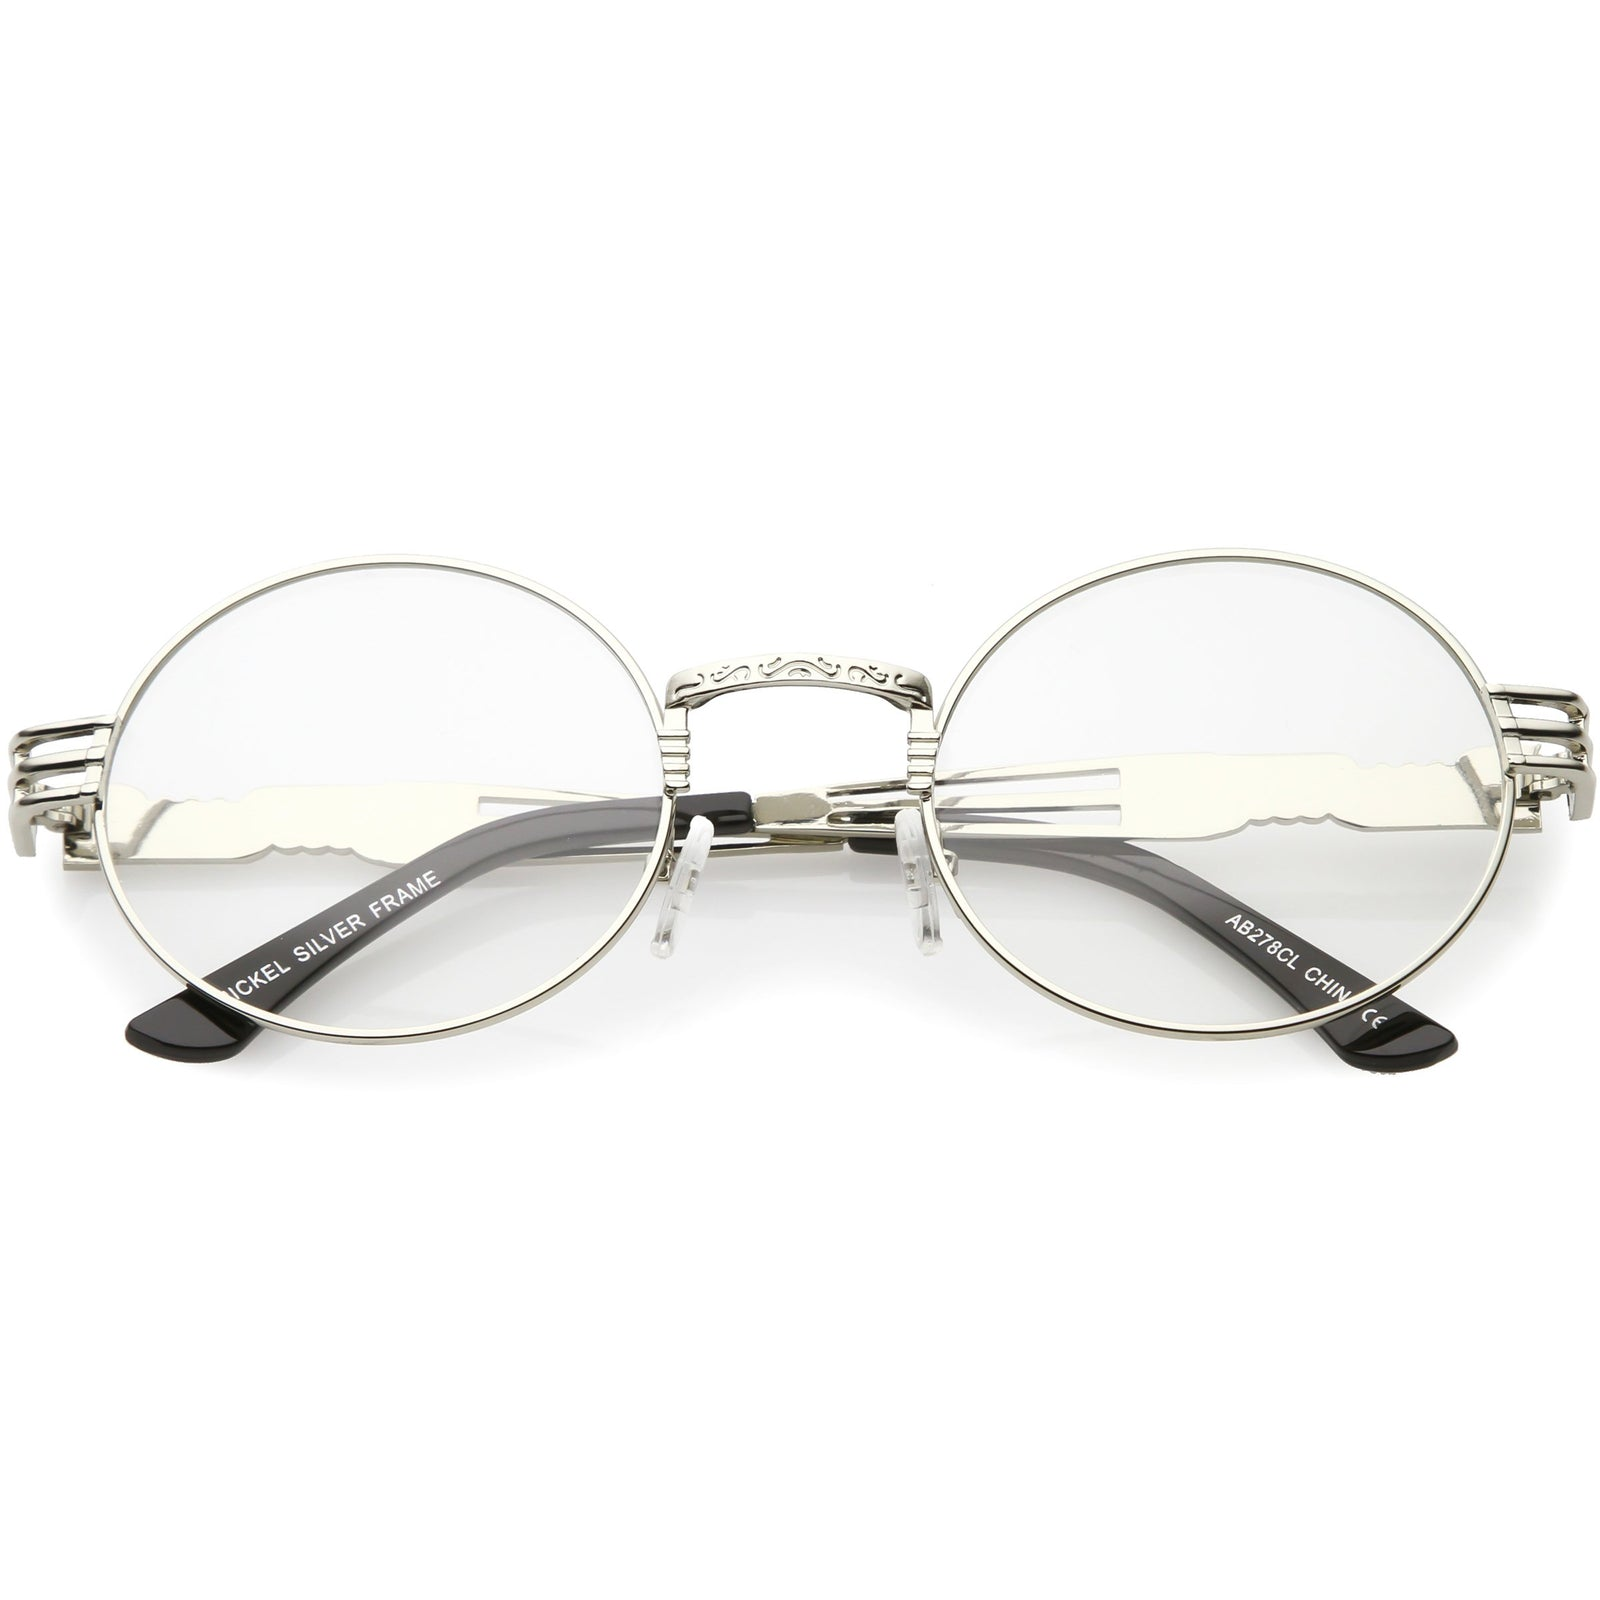 2fedb1950bc Retro Round Clear Lens Engraved Metal Steampunk Flat Lens Glasses C481